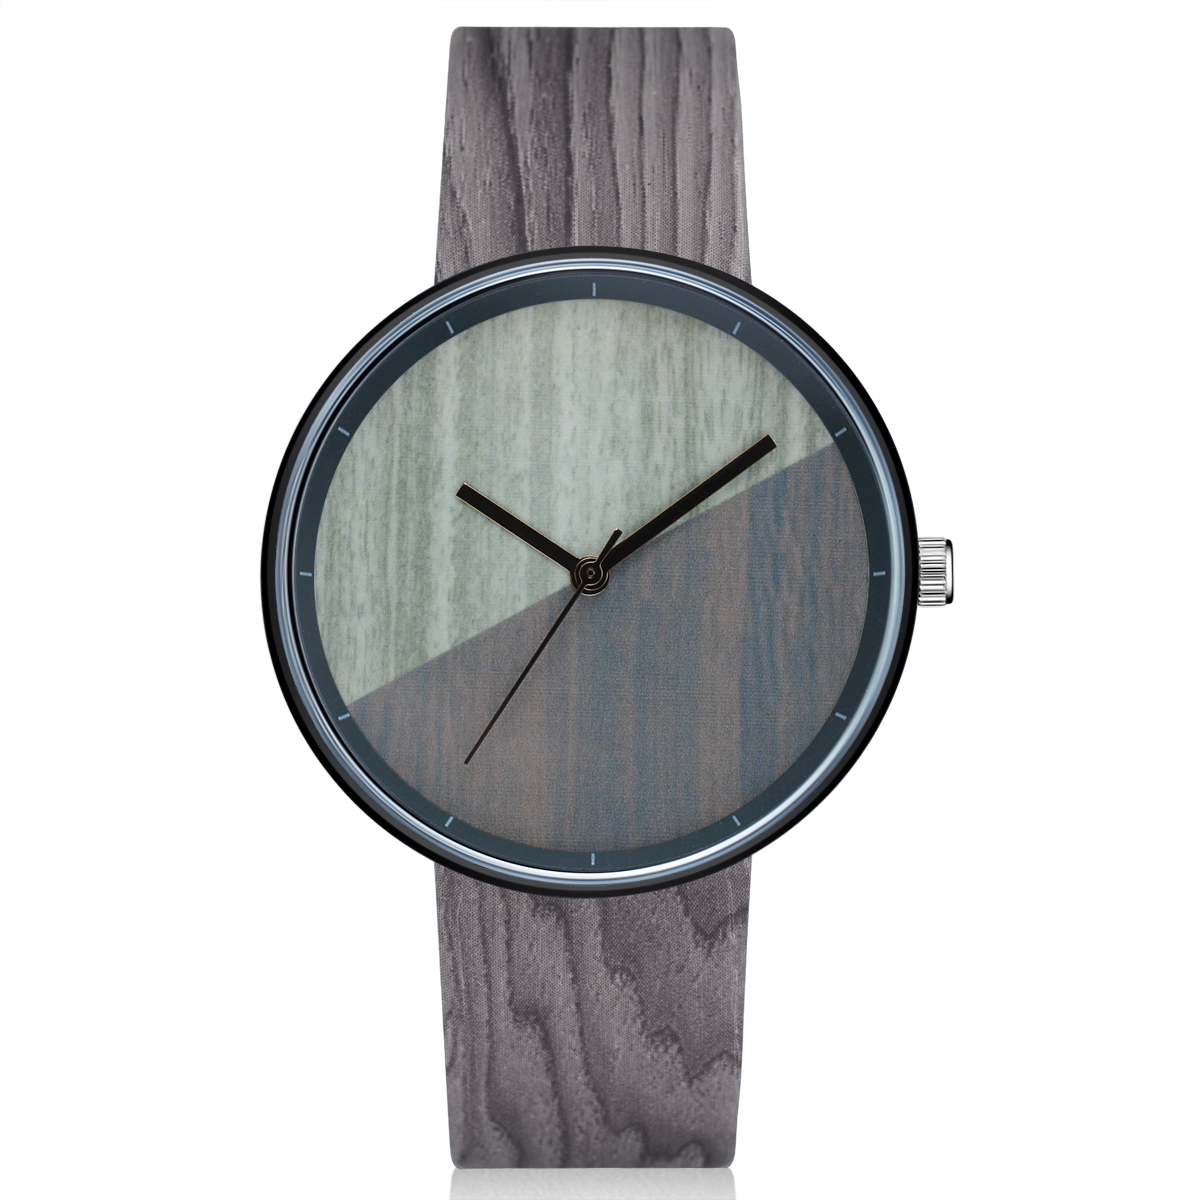 GAIETY-Mens-Womens-Casual-Watches-Leather-Stainless-Steel-Dial-Quartz-Wristwatch